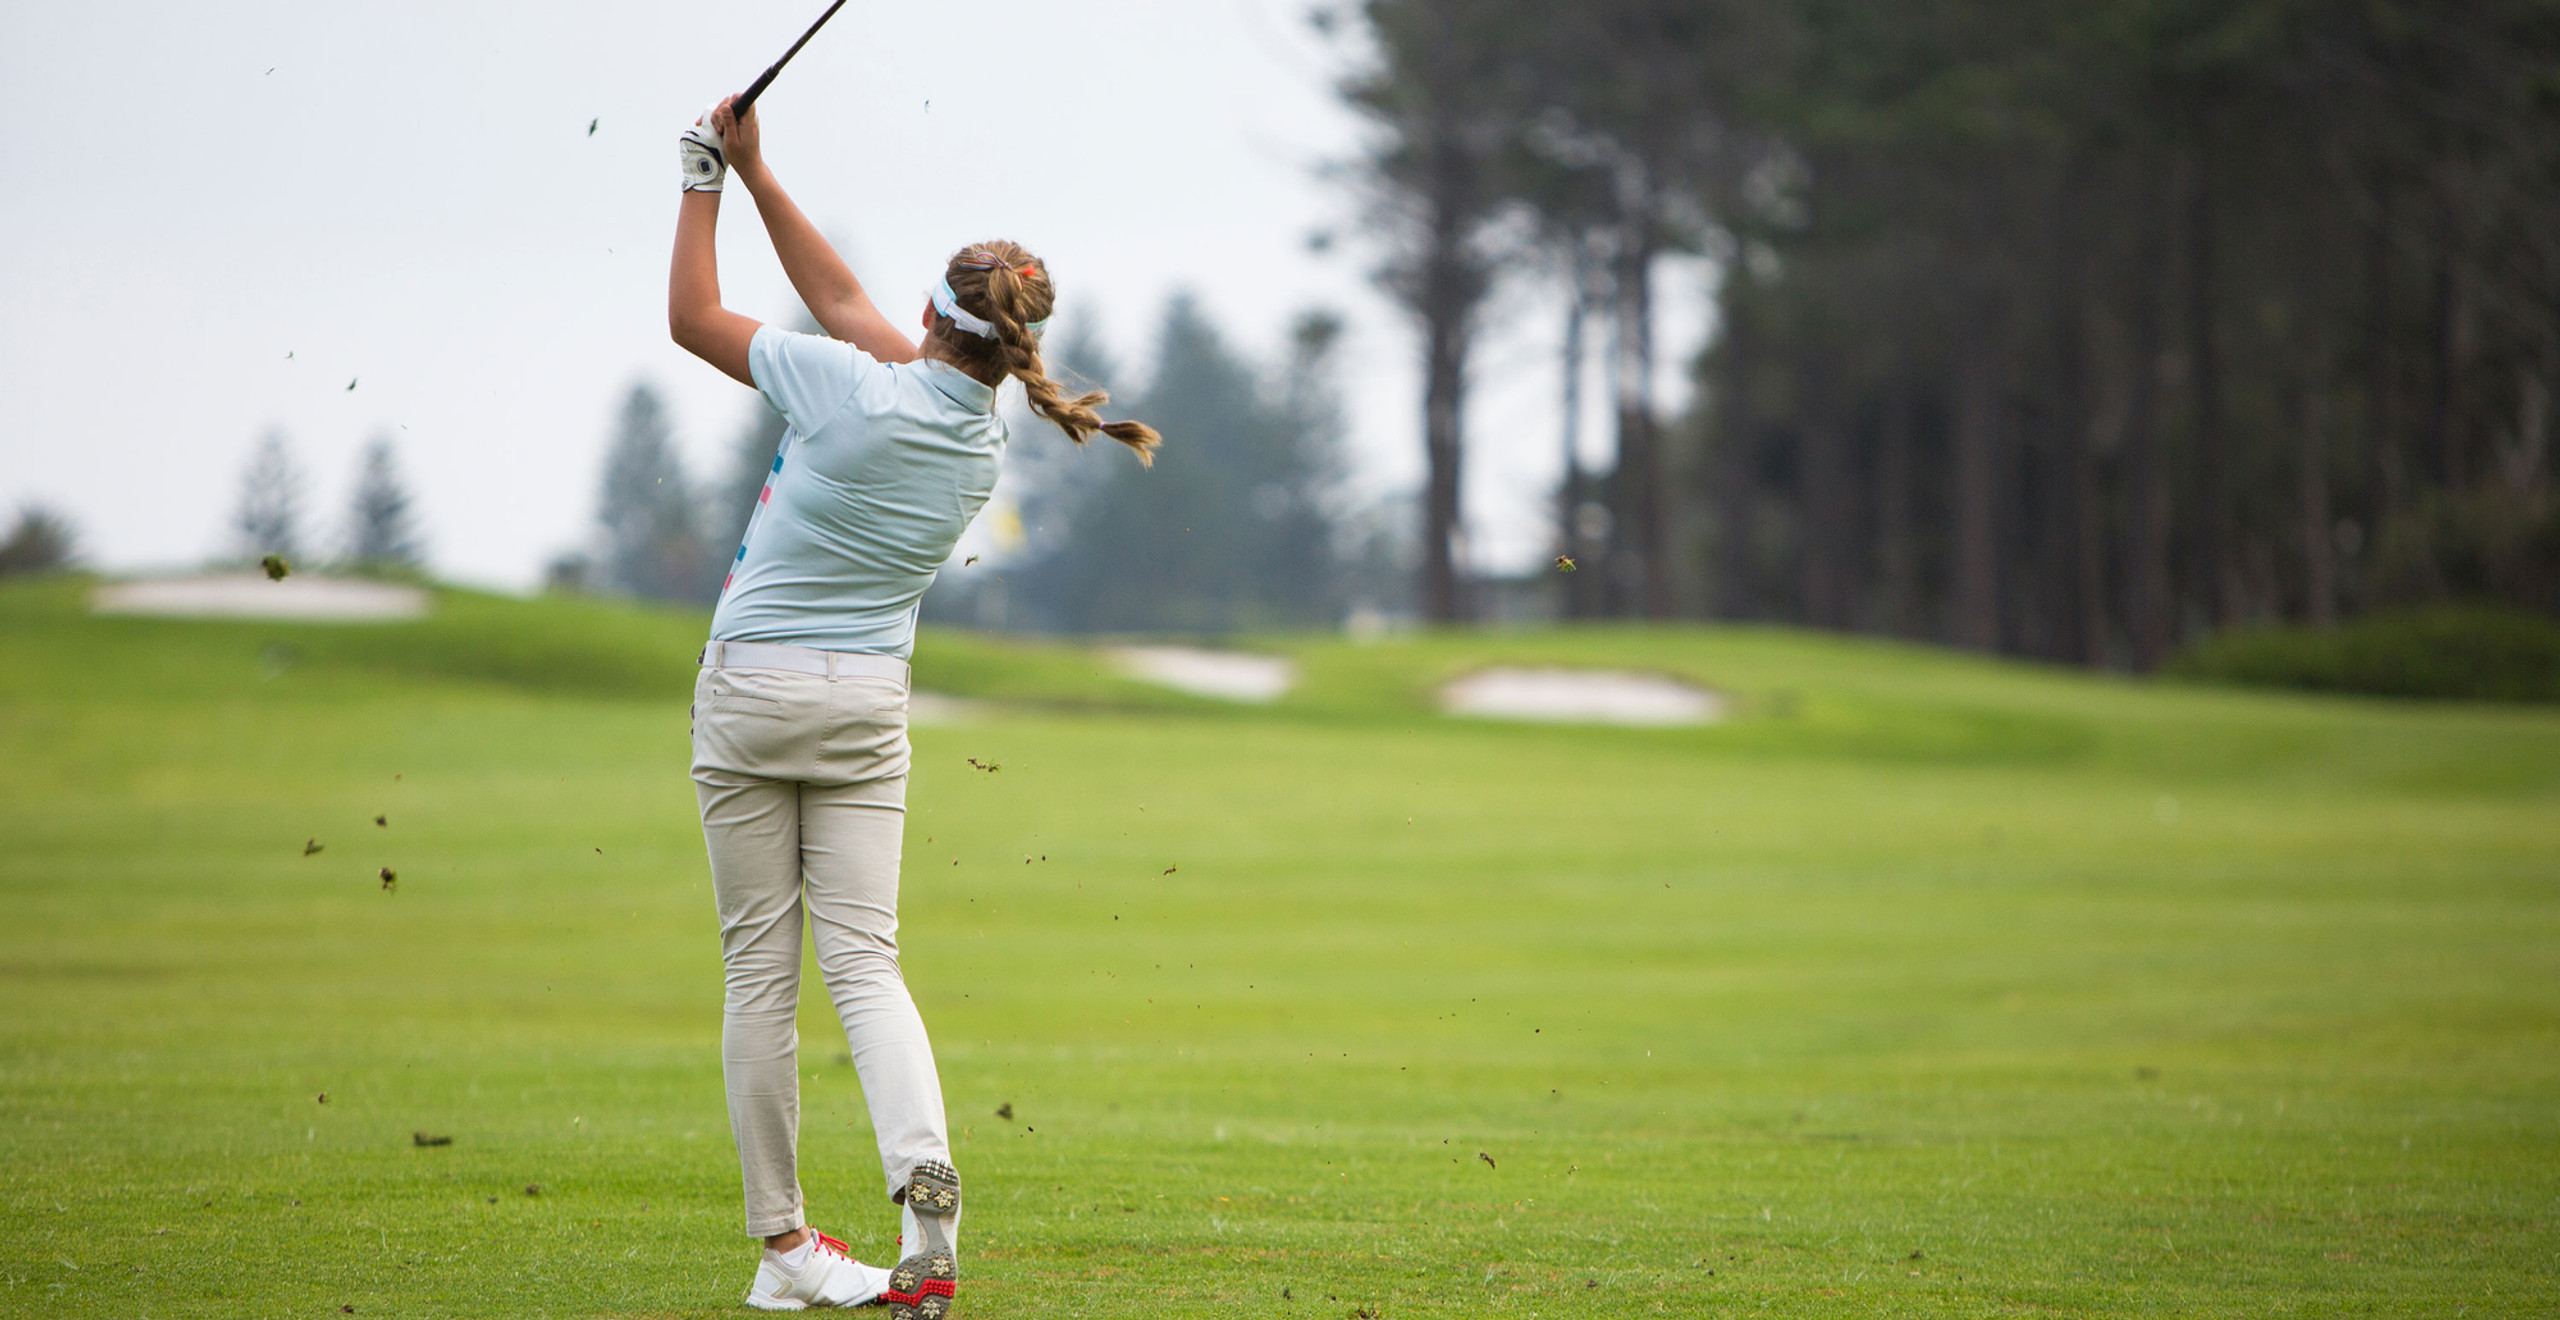 Spine mobility in golf swing